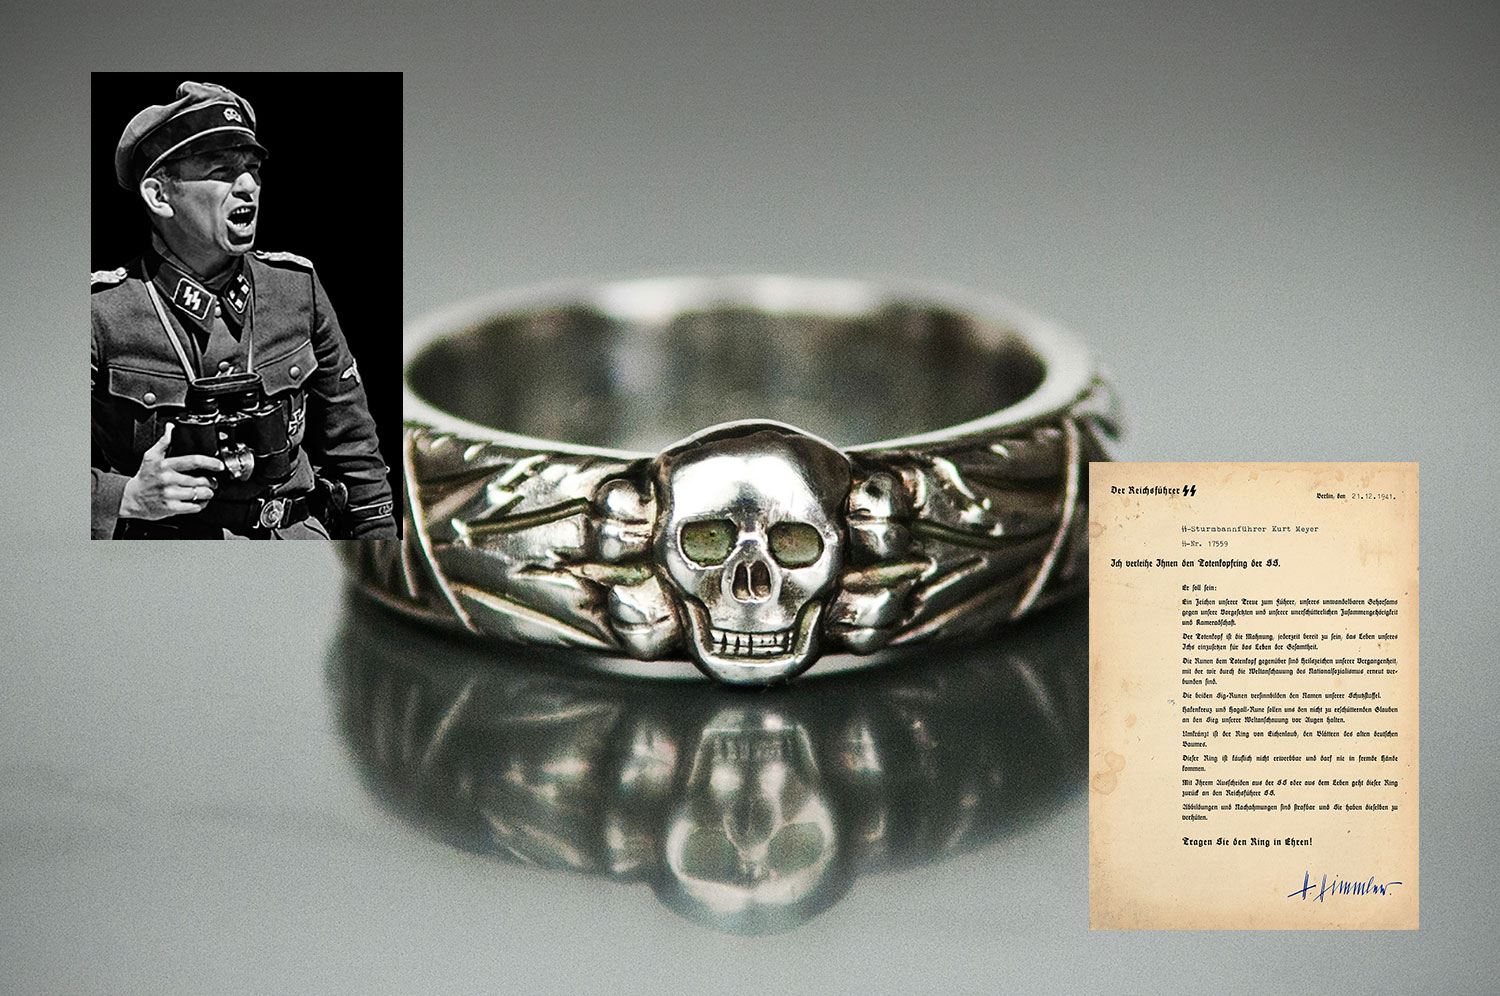 The Panzer Meyer SS Honor Ring & SS Document Set